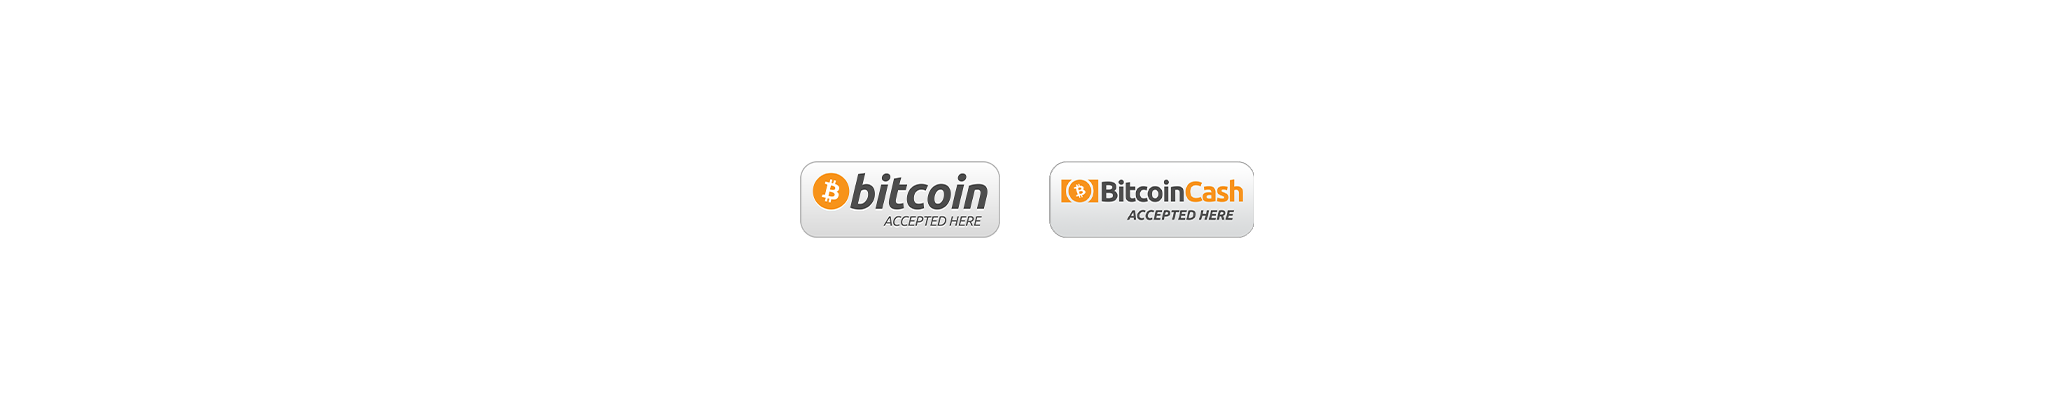 Bitcoin and Bitcoin Cash Cryptocurrency accepted here